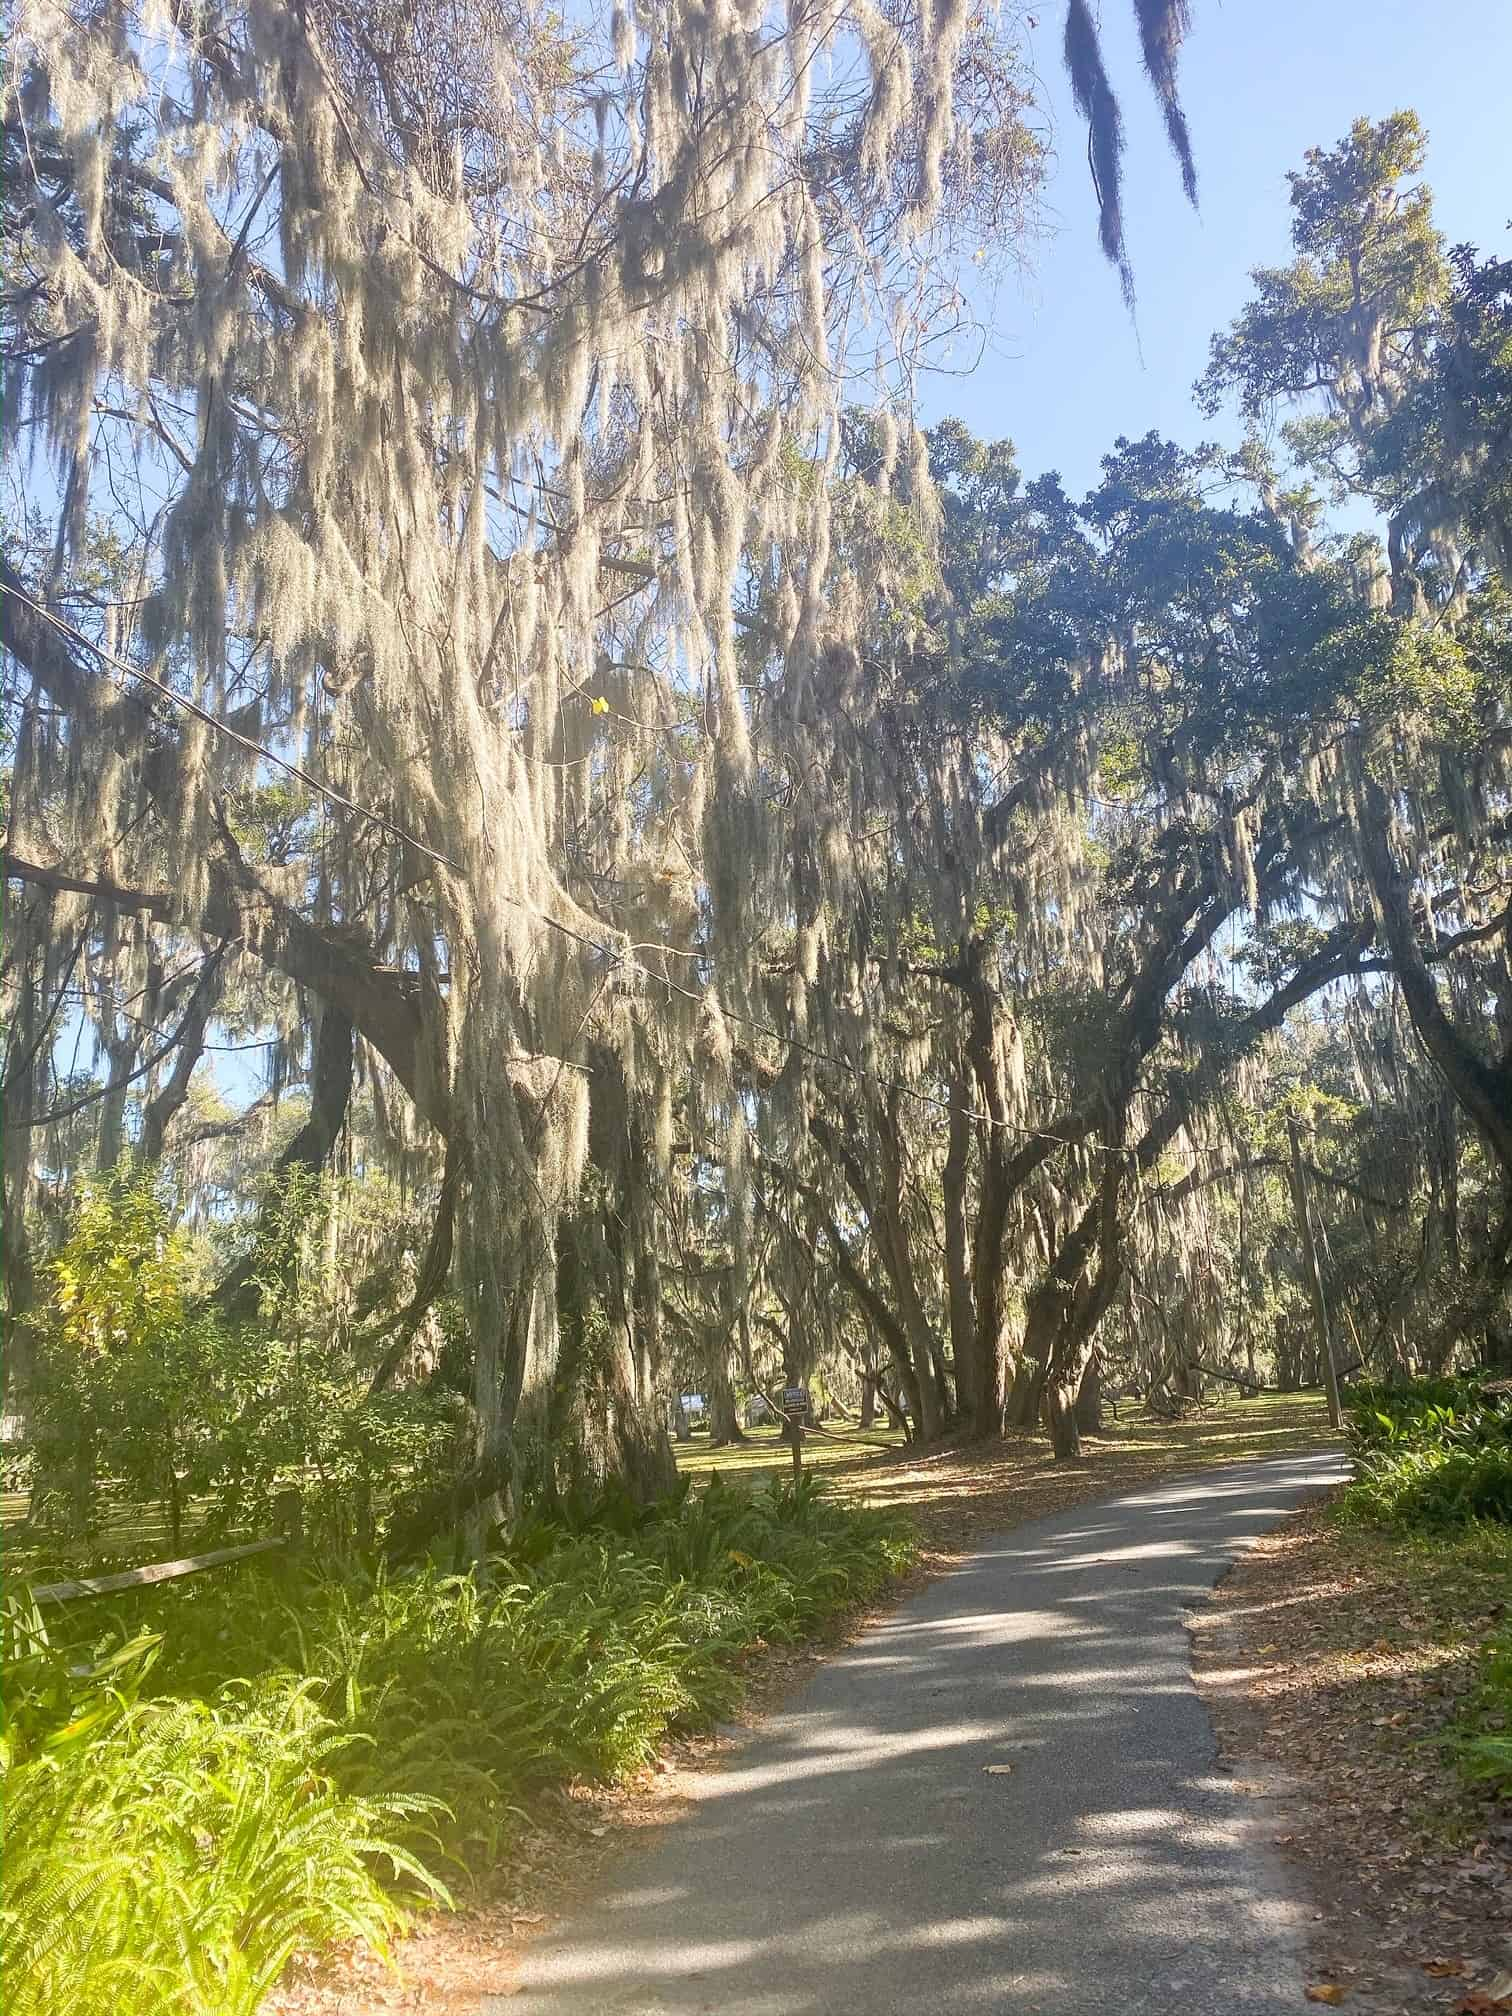 Behind The Scenes Draper James Trip by popular Dallas fashion blog, Glamorous Versatility: image of oak trees covered in Spanish Moss.